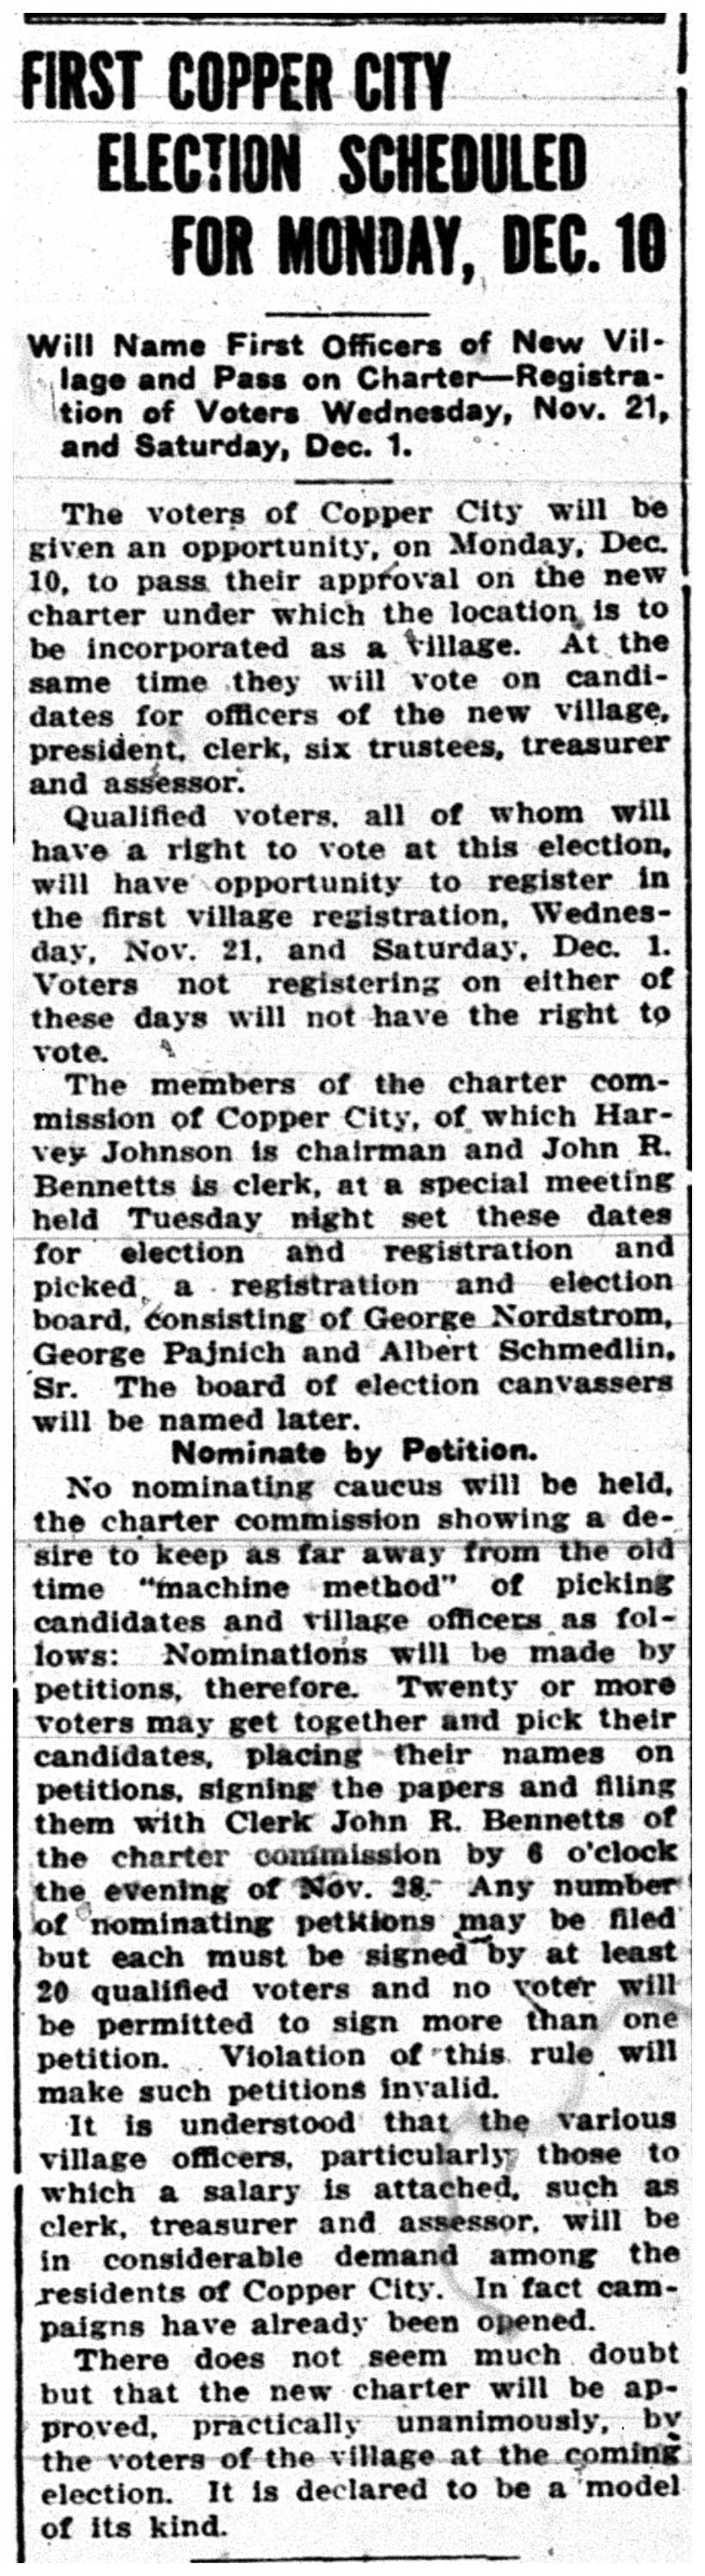 First Copper City Election, DMG - Nov. 15, 1917